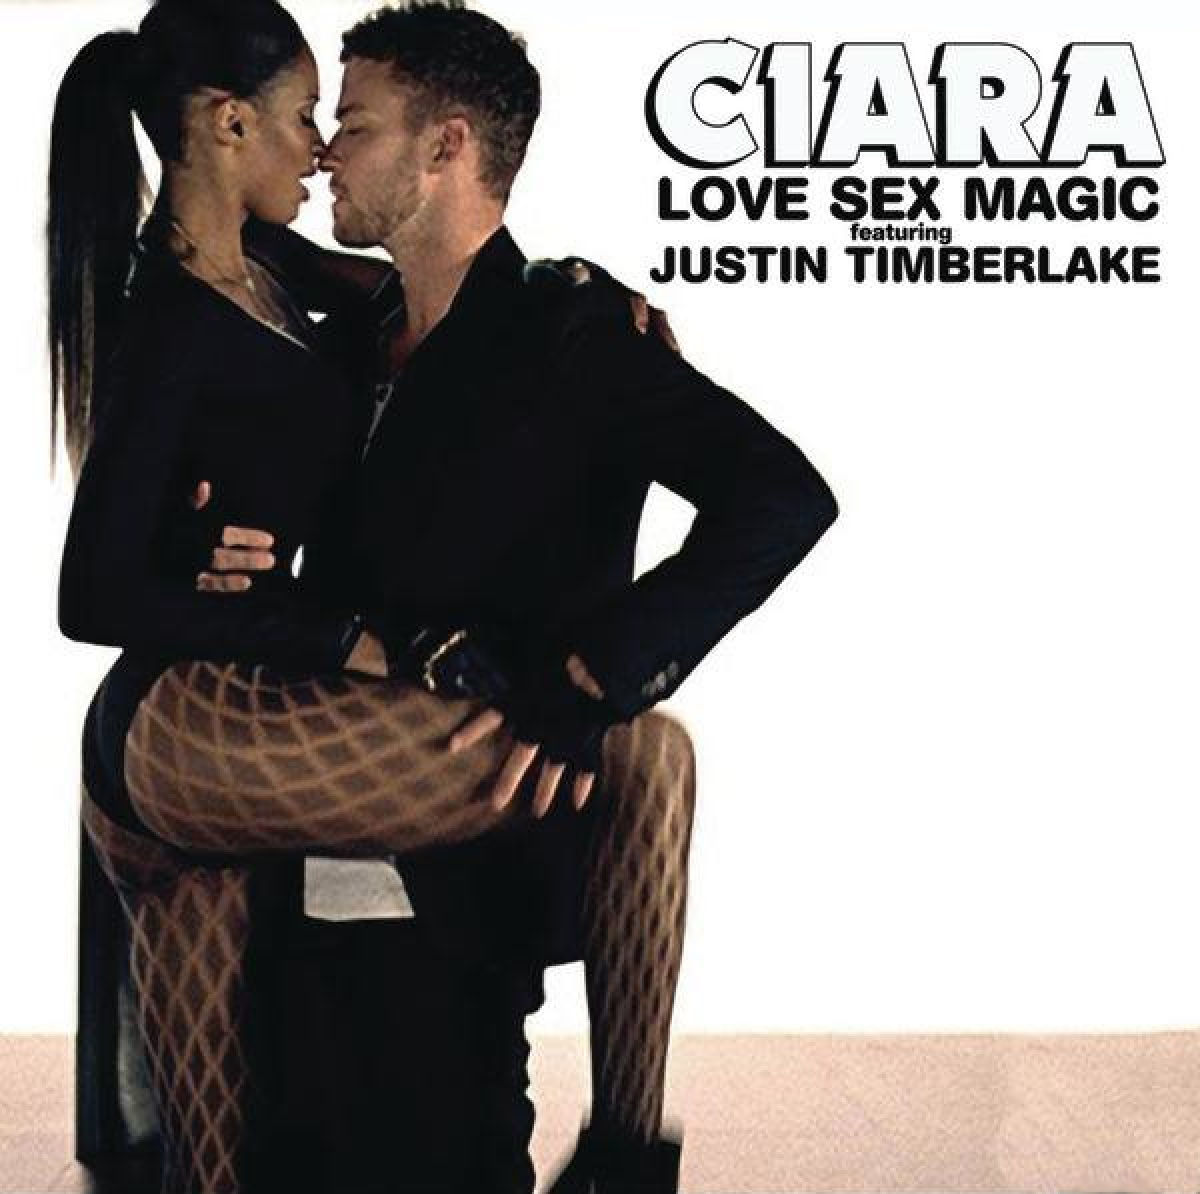 CIARA - Love Sex Magic (feat. Justin Timberlake)